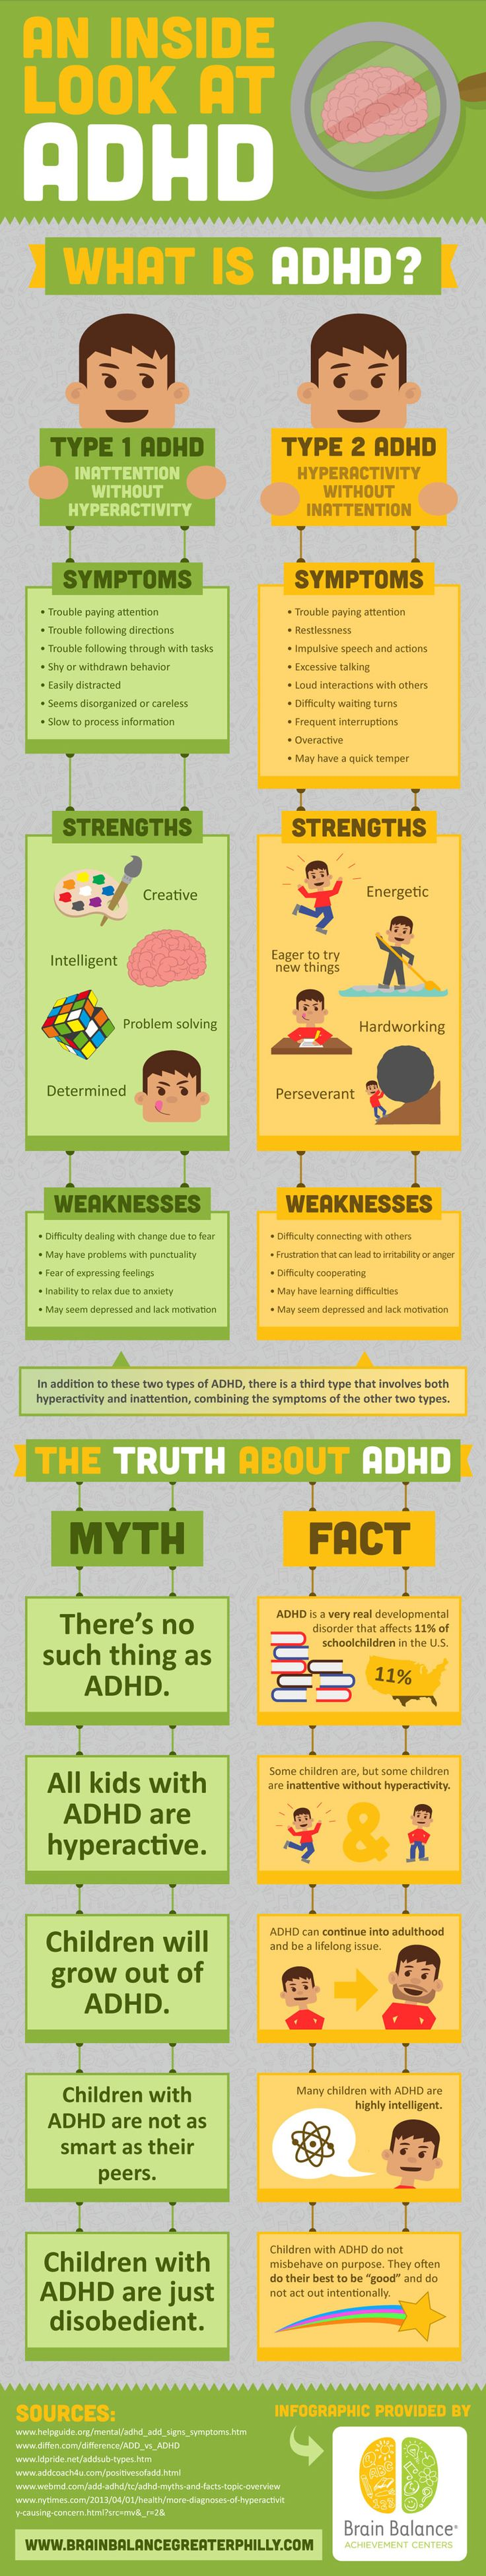 An Inside Look At ADHD Infographic.... WOW and WOW....love it!